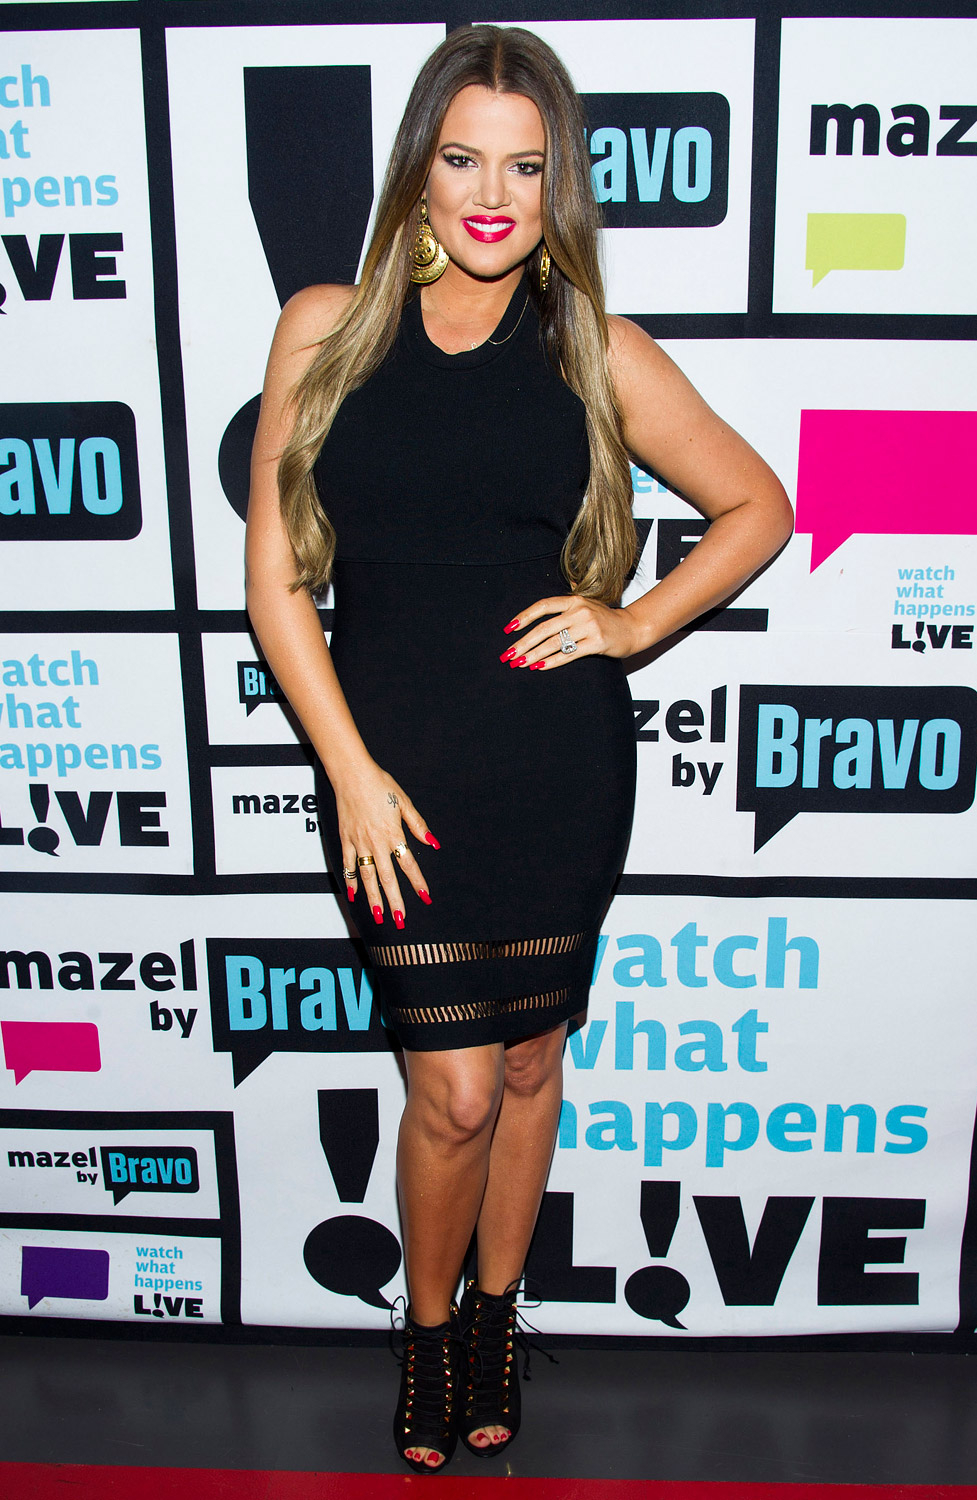 """Wearing a sexy LBD dress to an interview on Watch What Happens Live on May 28, 2013 Khloé talked more about her new eating plan. """"It is consistency,"""" she told Andy Cohen."""